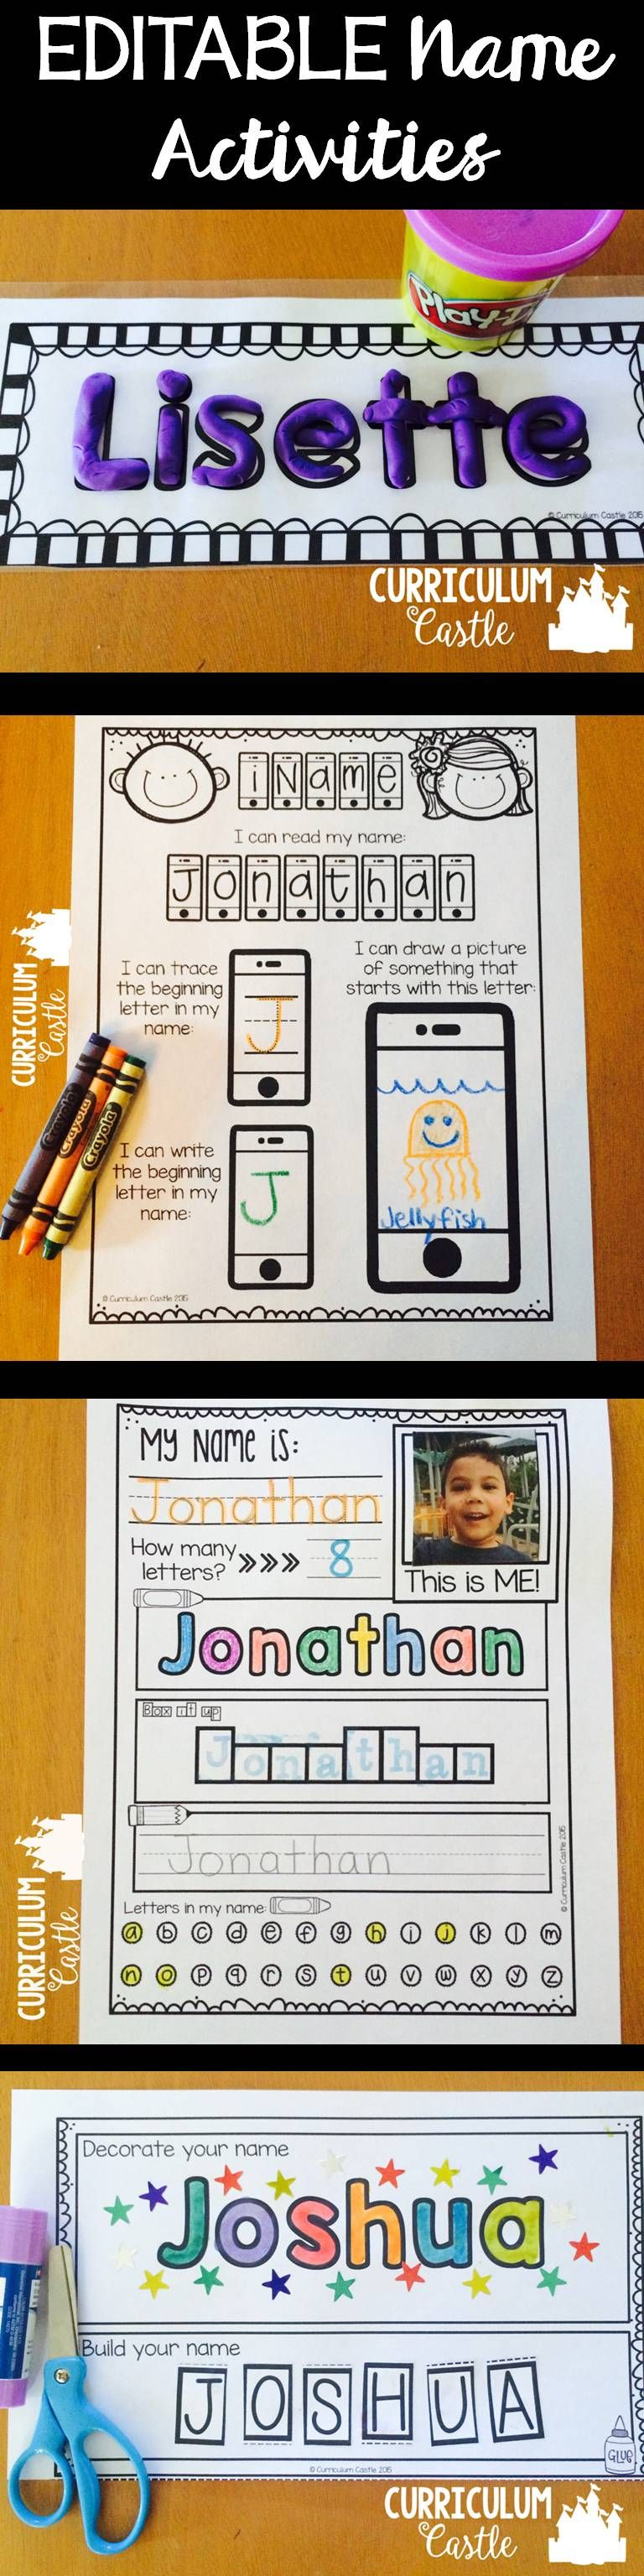 Name Activities Editable | Lal | Name Activities, Kindergarten Names